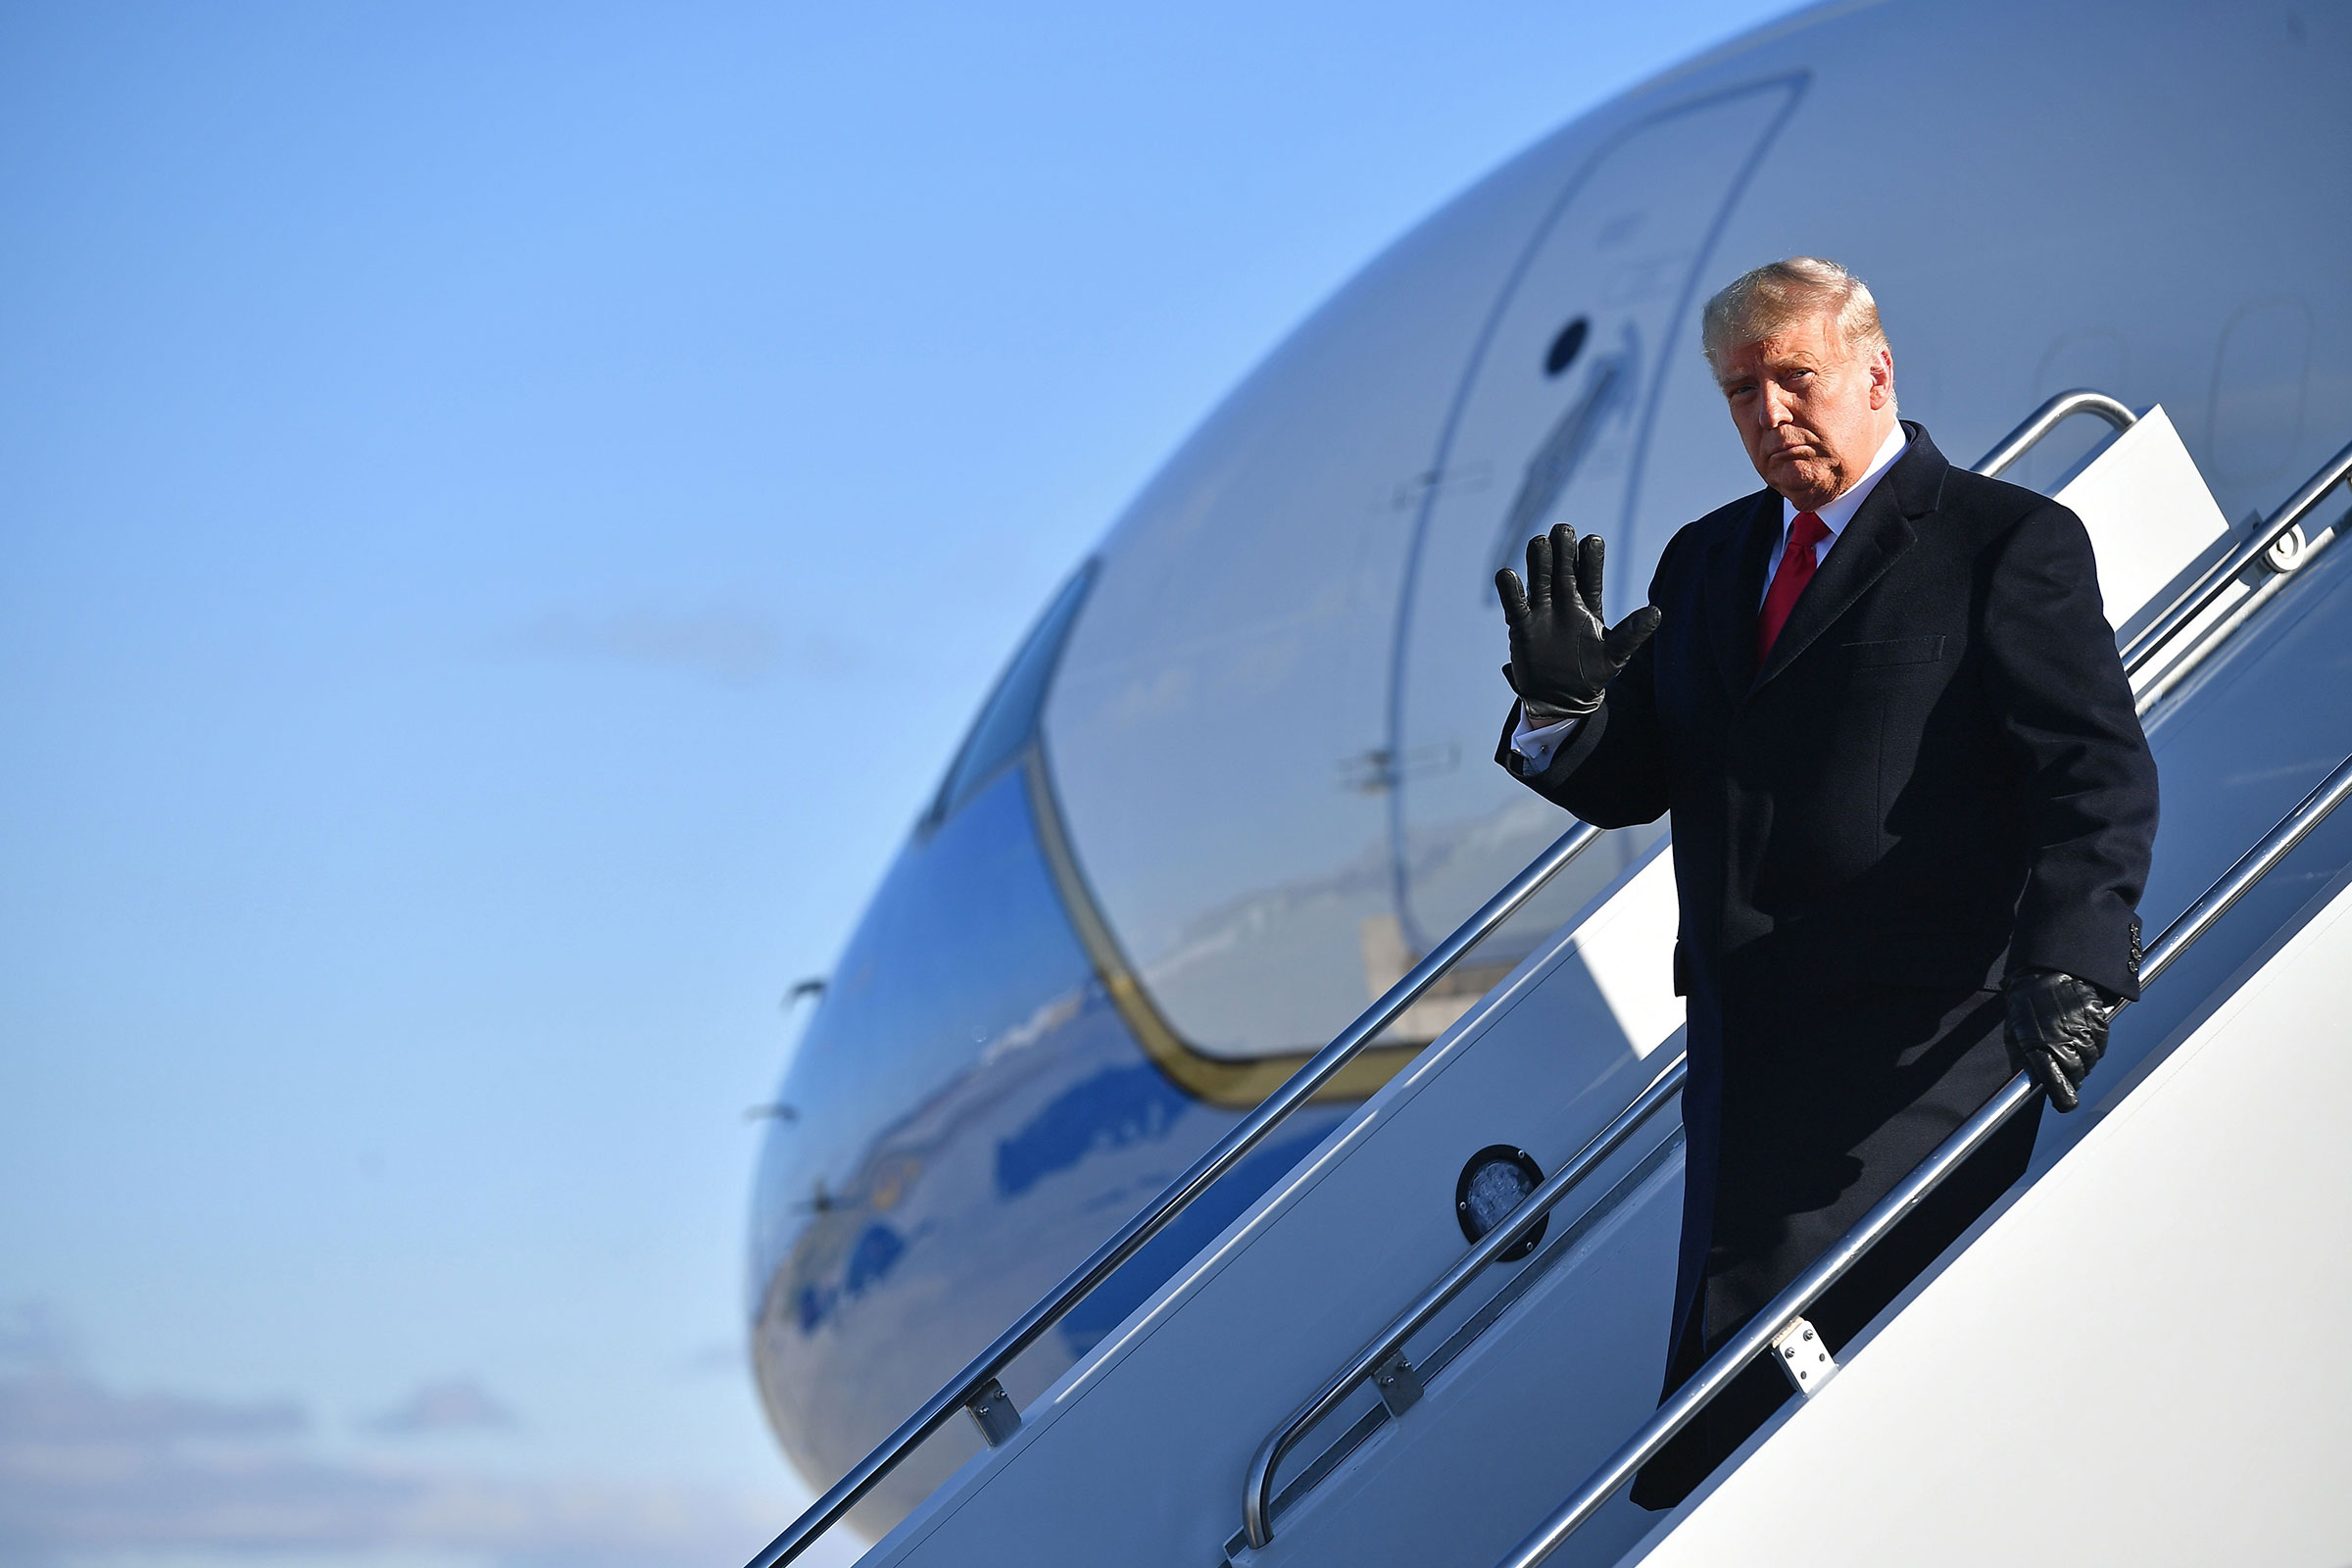 President Donald Trump arrives at a campaign rally in Green Bay, Wisconsin, on Friday, October 30.